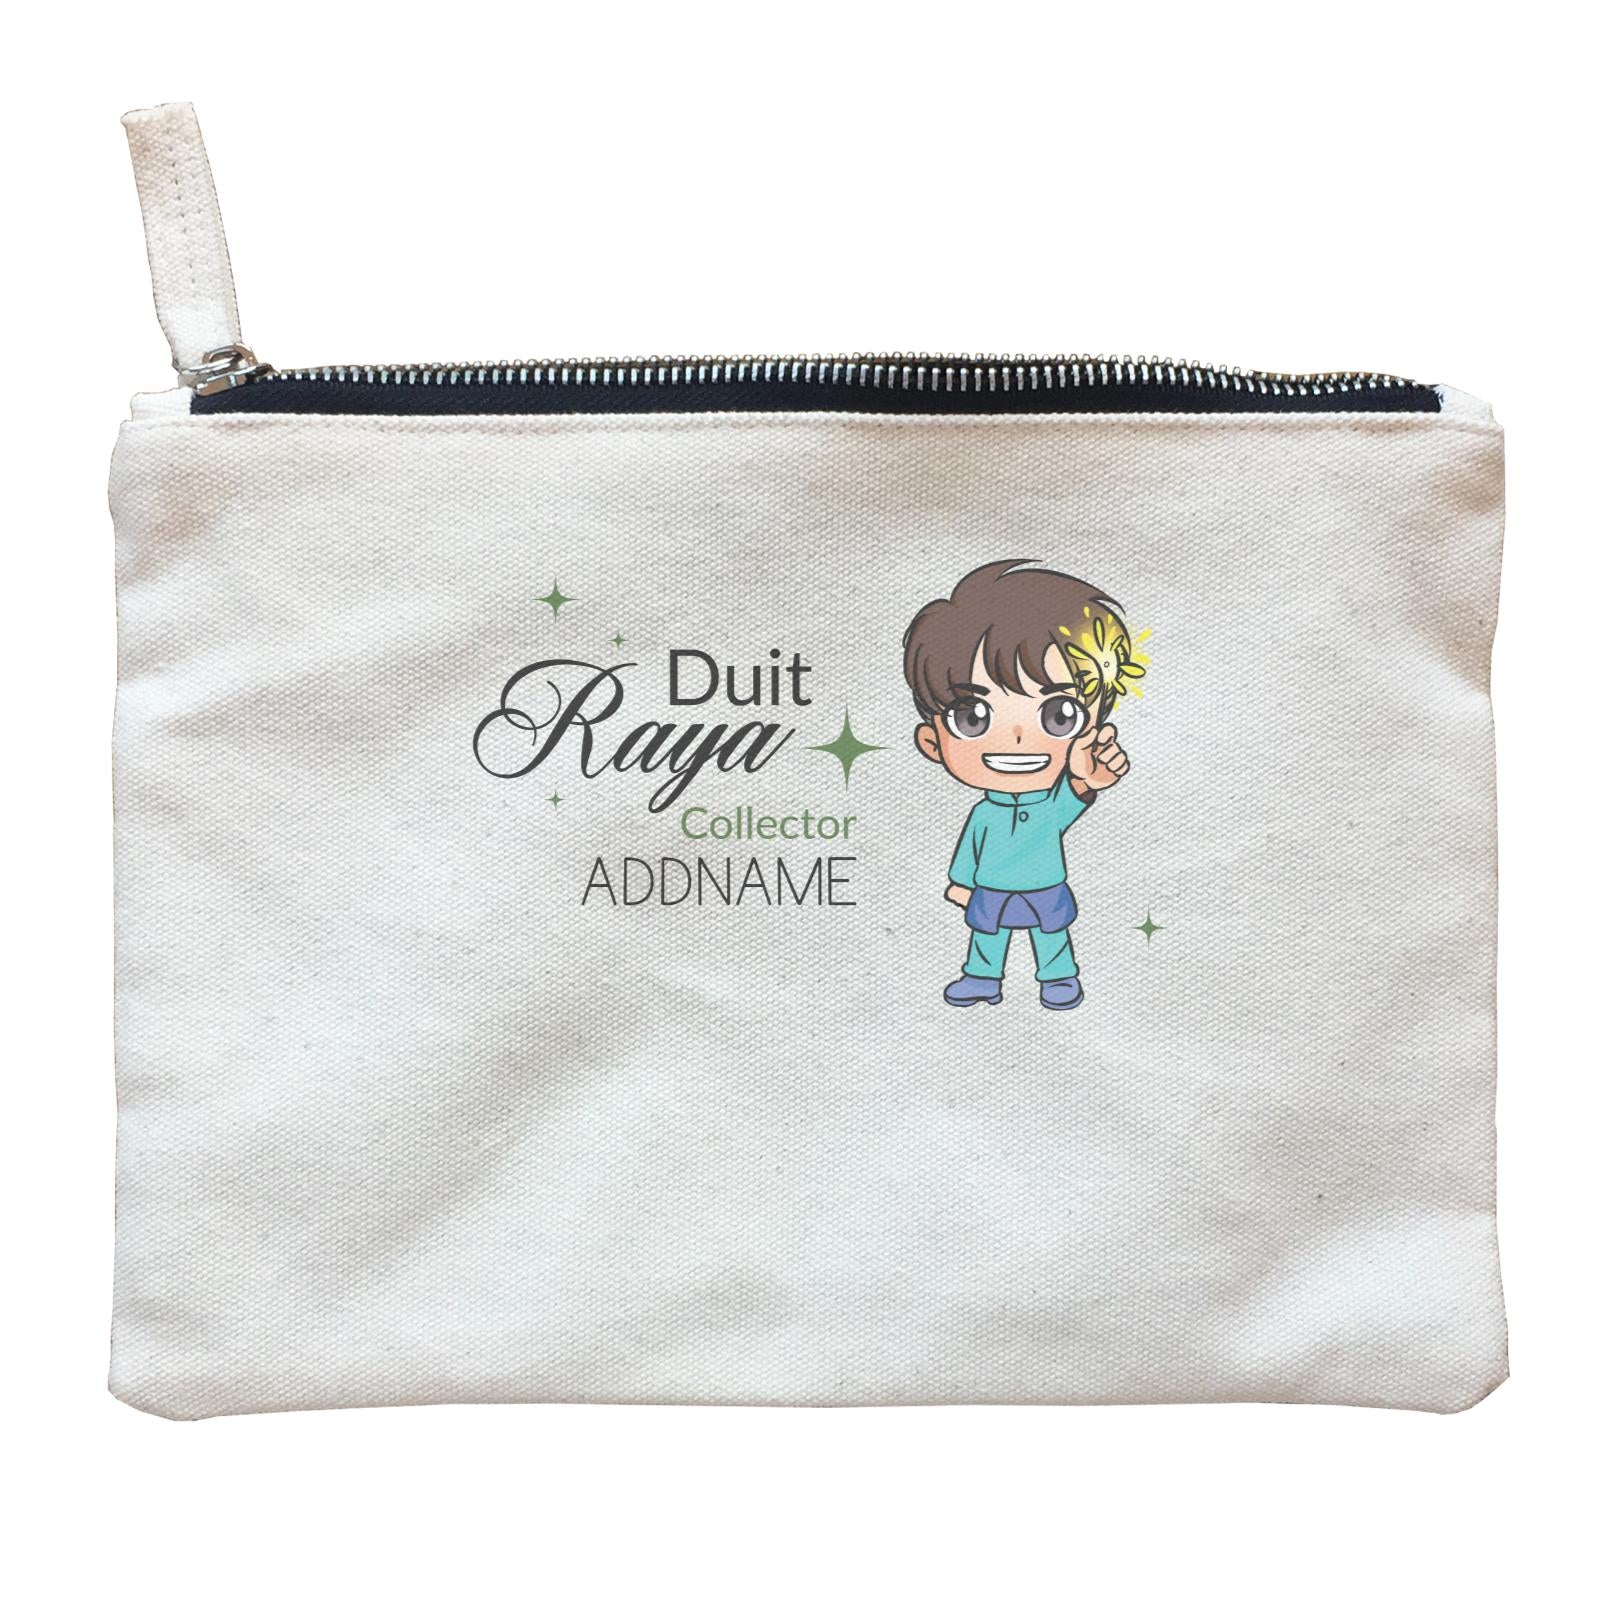 Raya Chibi Little Boy Duit Raya Collector Addname Zipper Pouch